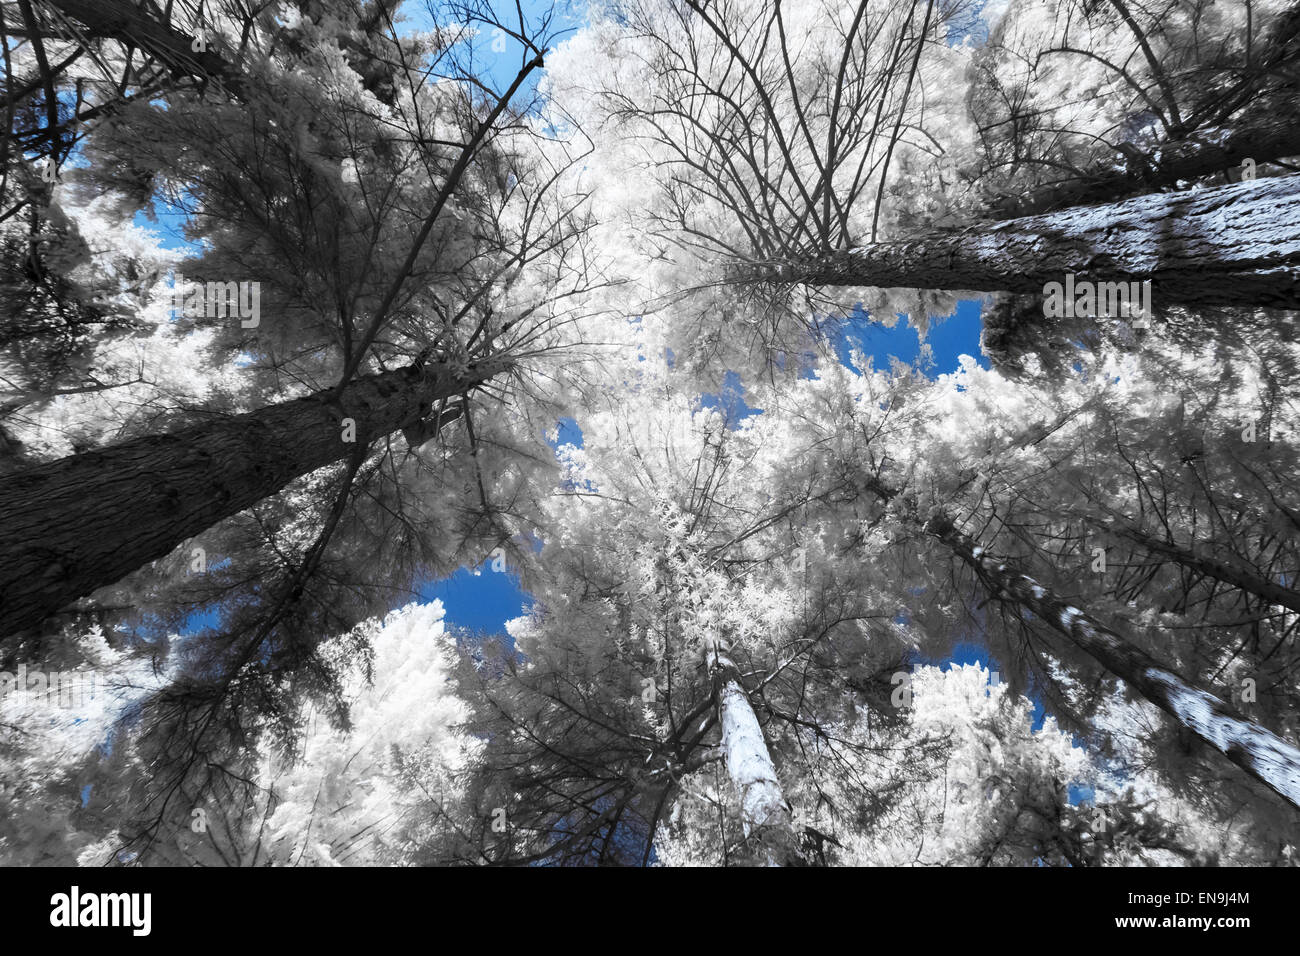 False Colour Infra Red Image Looking Upwards to Tree Canopy - Stock Image & False Canopy Stock Photos u0026 False Canopy Stock Images - Alamy